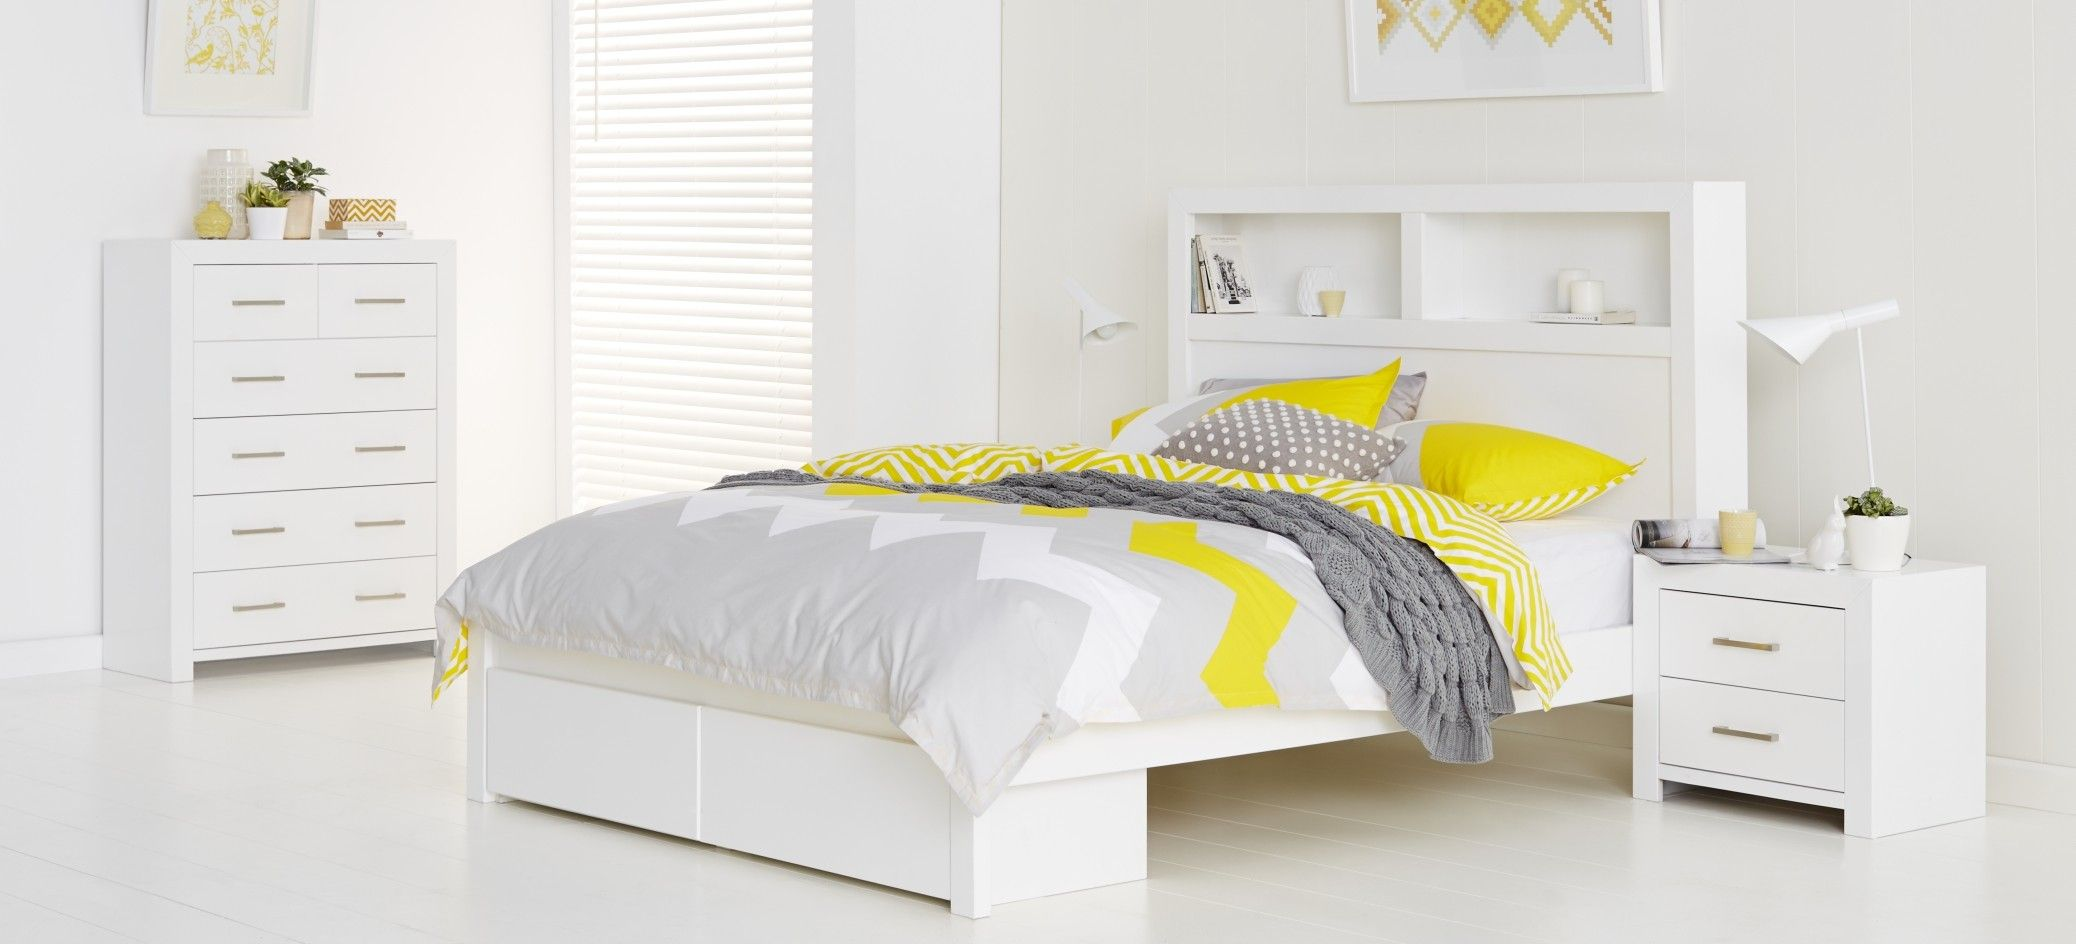 Carla Bedroom Furniture - High gloss white finish bed, includes two ...